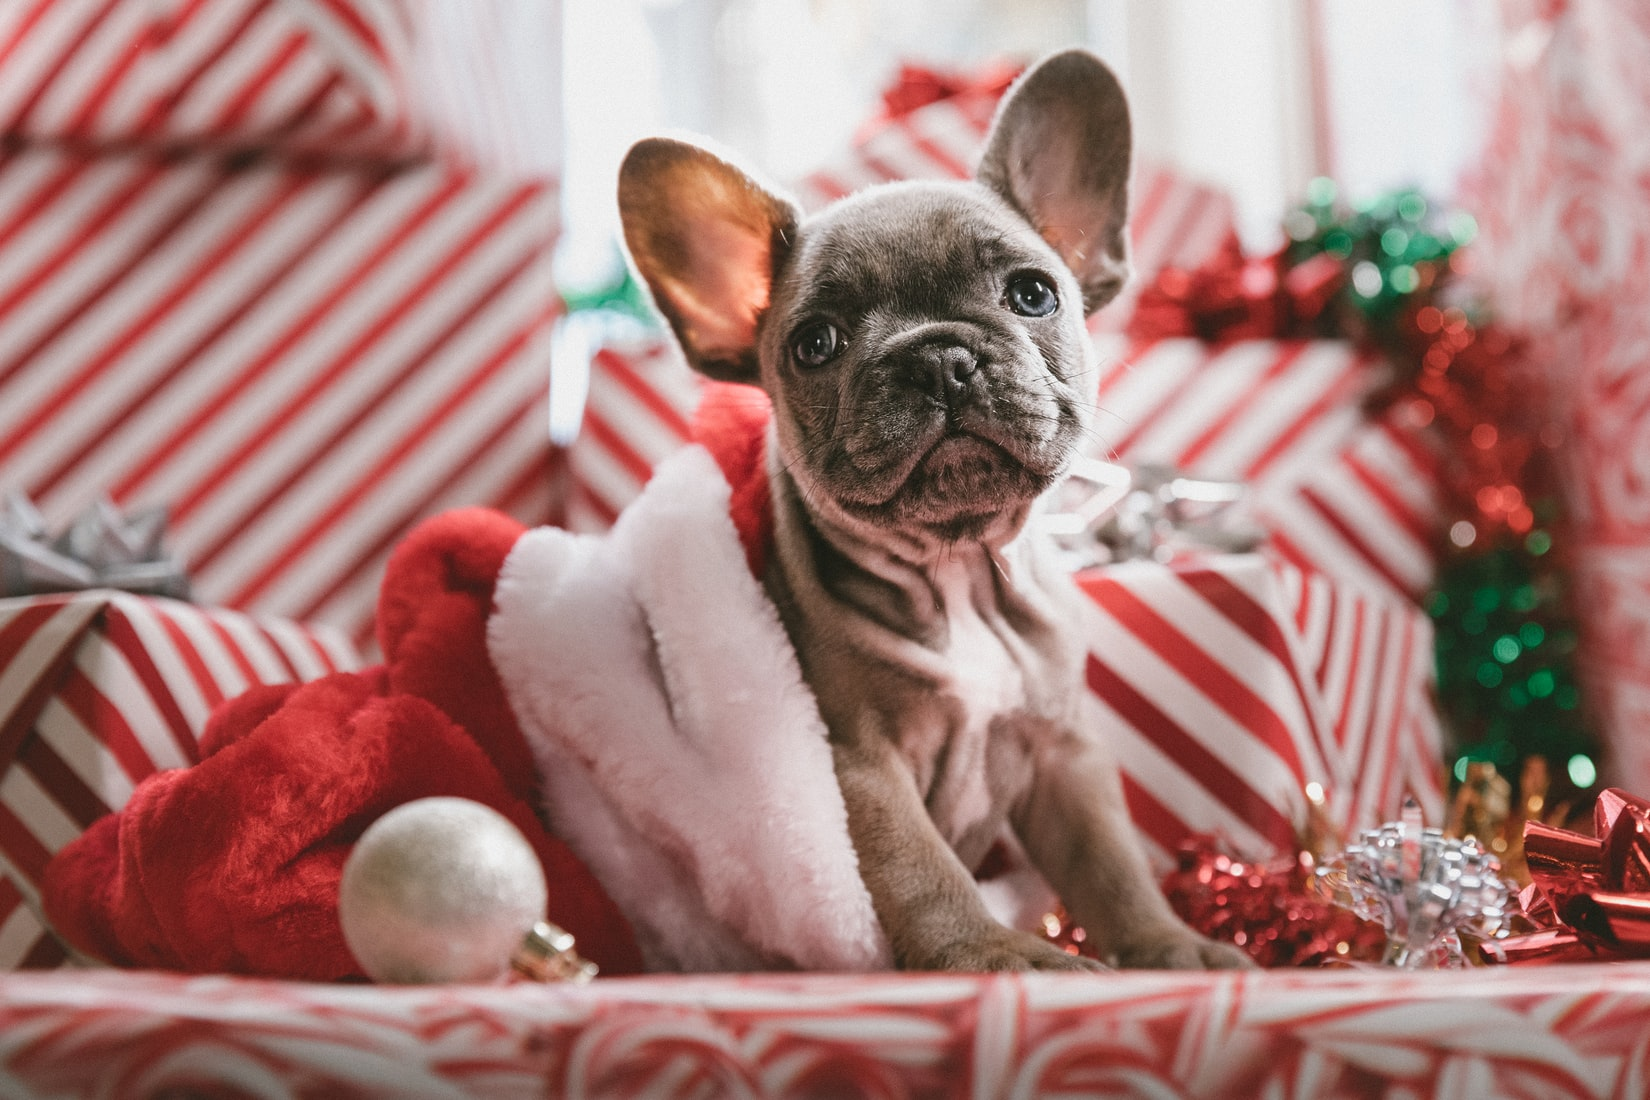 Brindle french bulldog puppy in Santa hat near Christmas presents